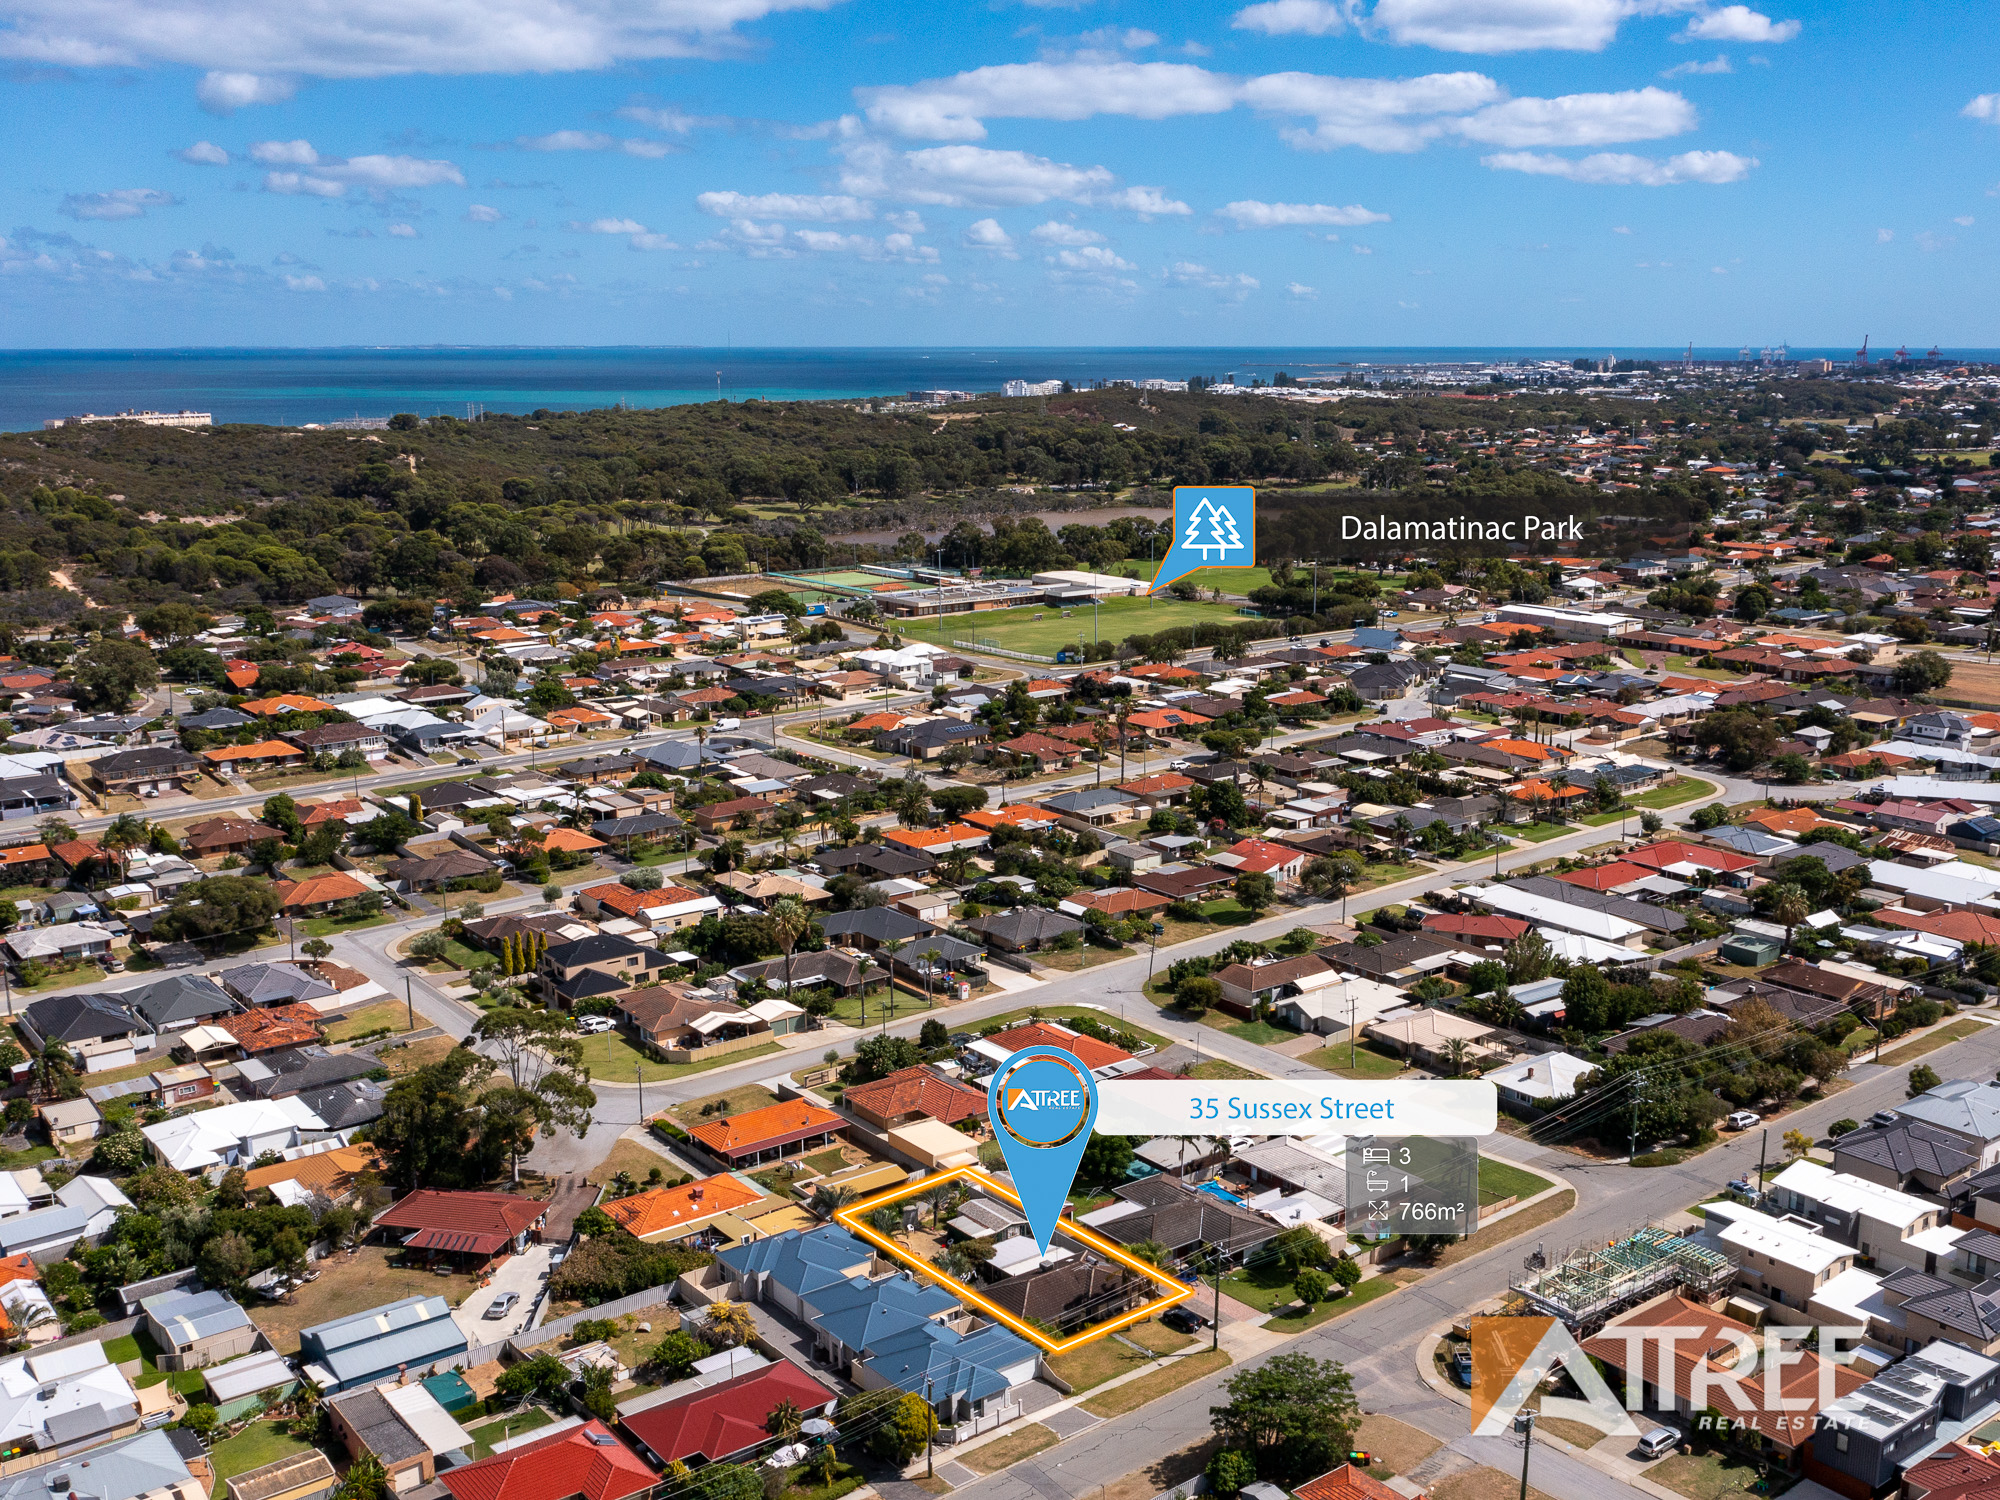 Property for sale in SPEARWOOD, 35 Sussex Street : Attree Real Estate